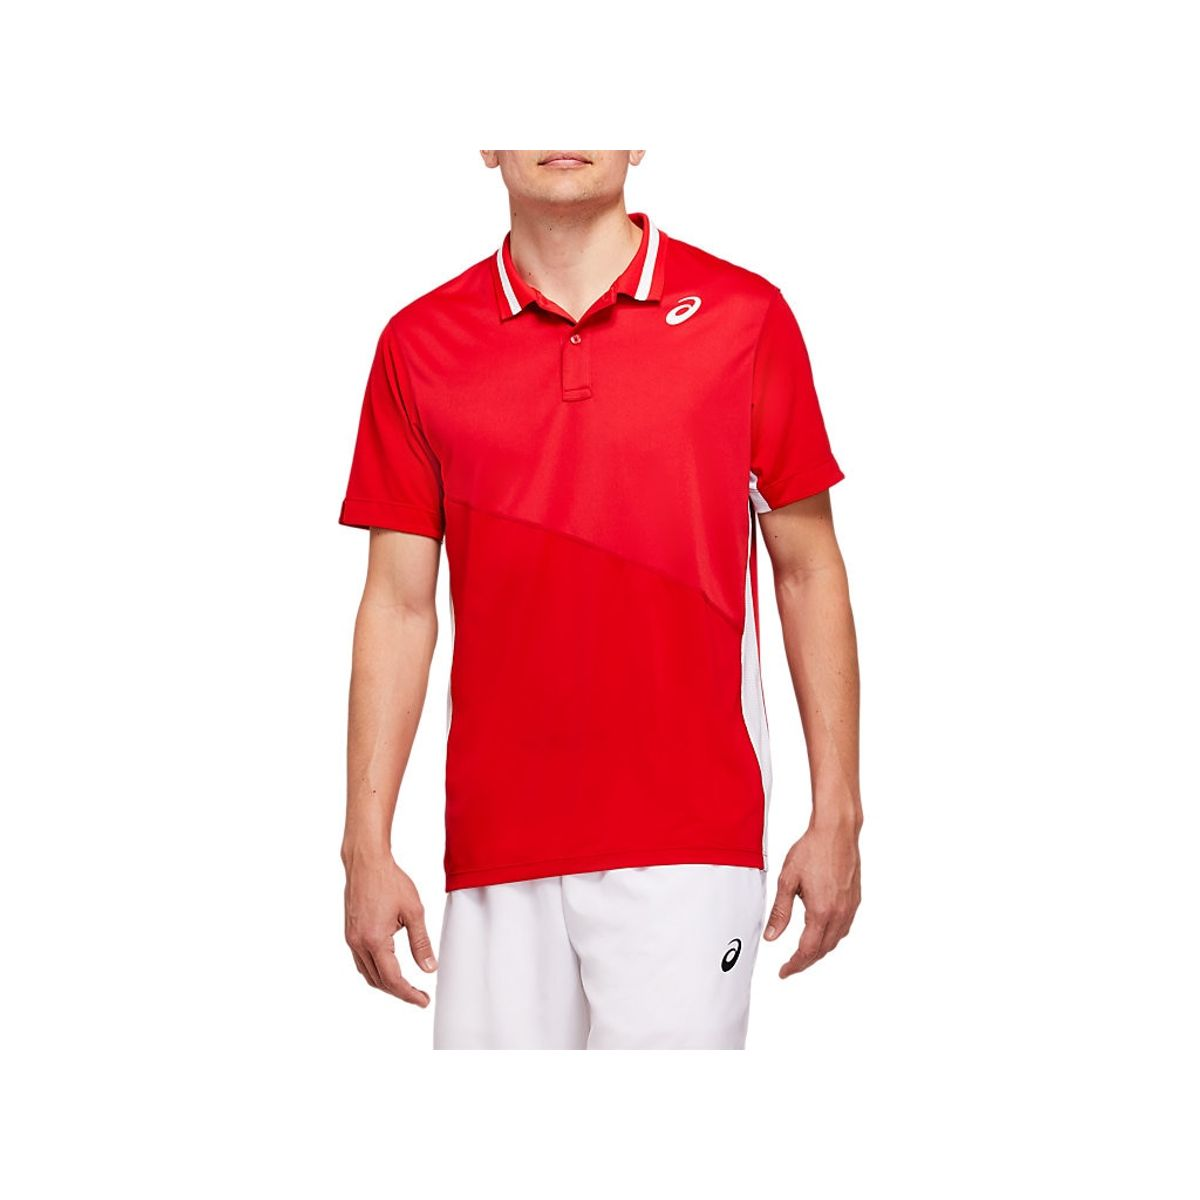 CLUB-M-POLO-SHIRT